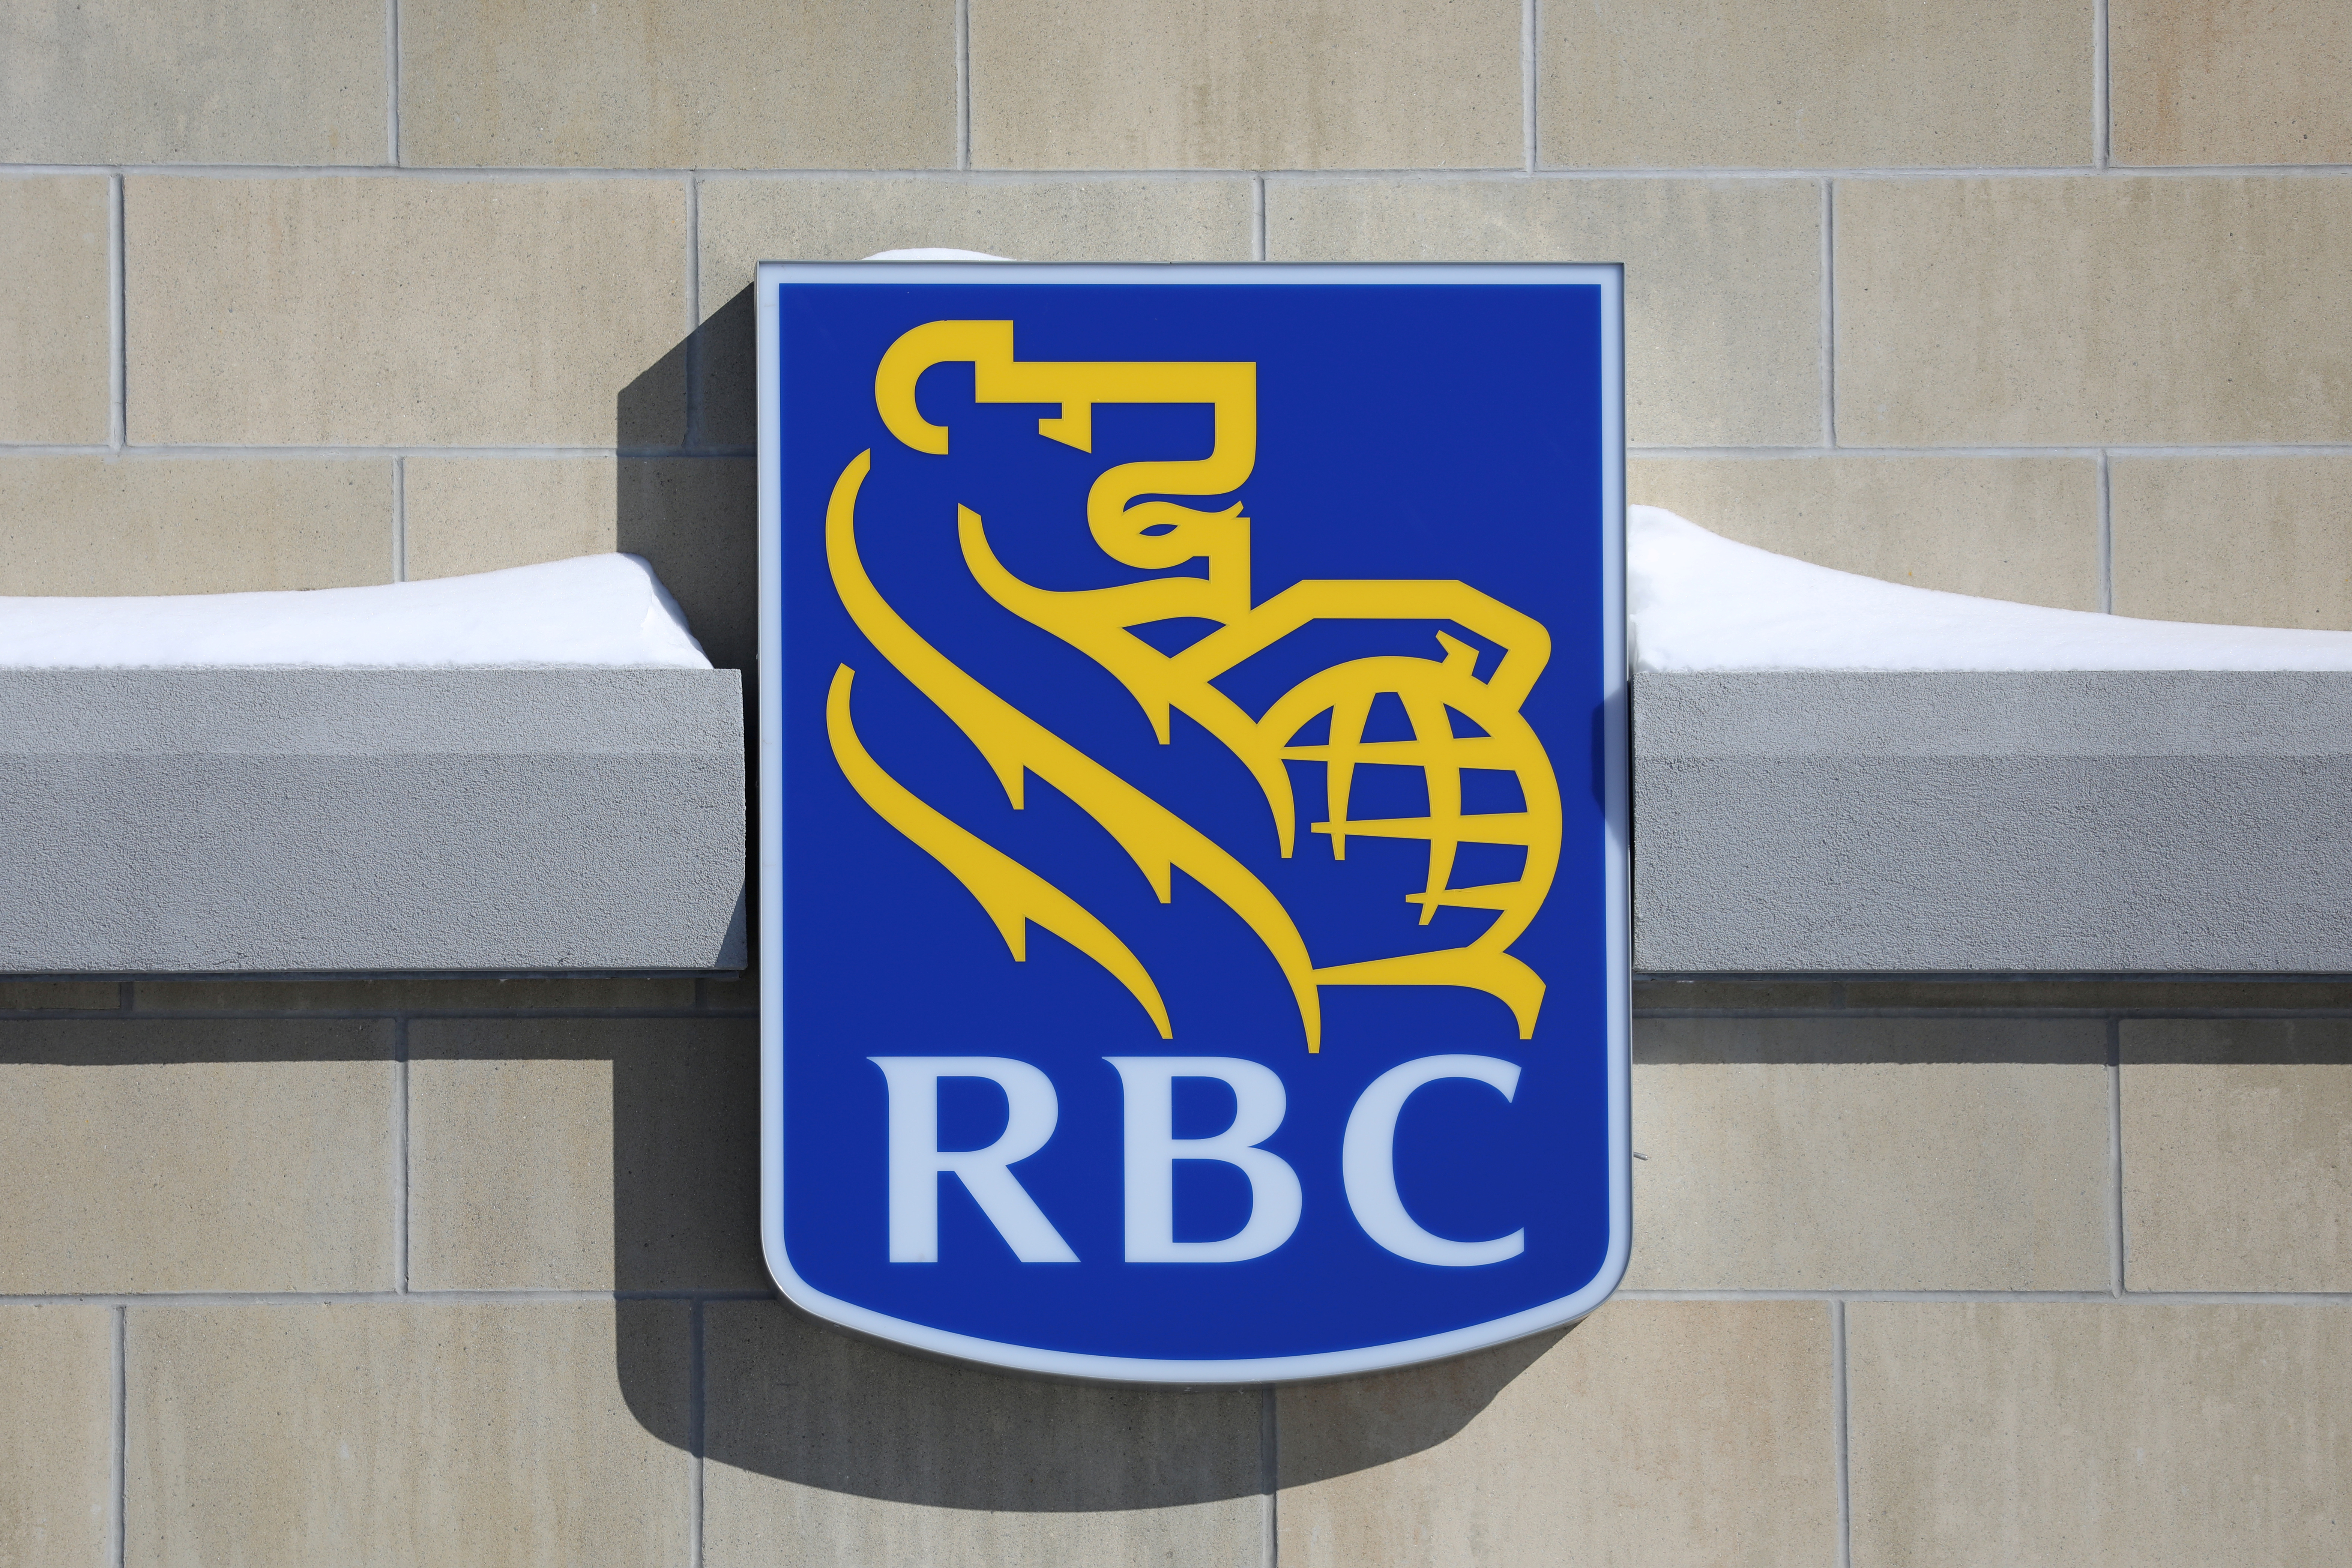 The Royal Bank of Canada (RBC) logo is seen outside of a branch in Ottawa, Ontario, Canada, February 14, 2019. REUTERS/Chris Wattie/File Photo